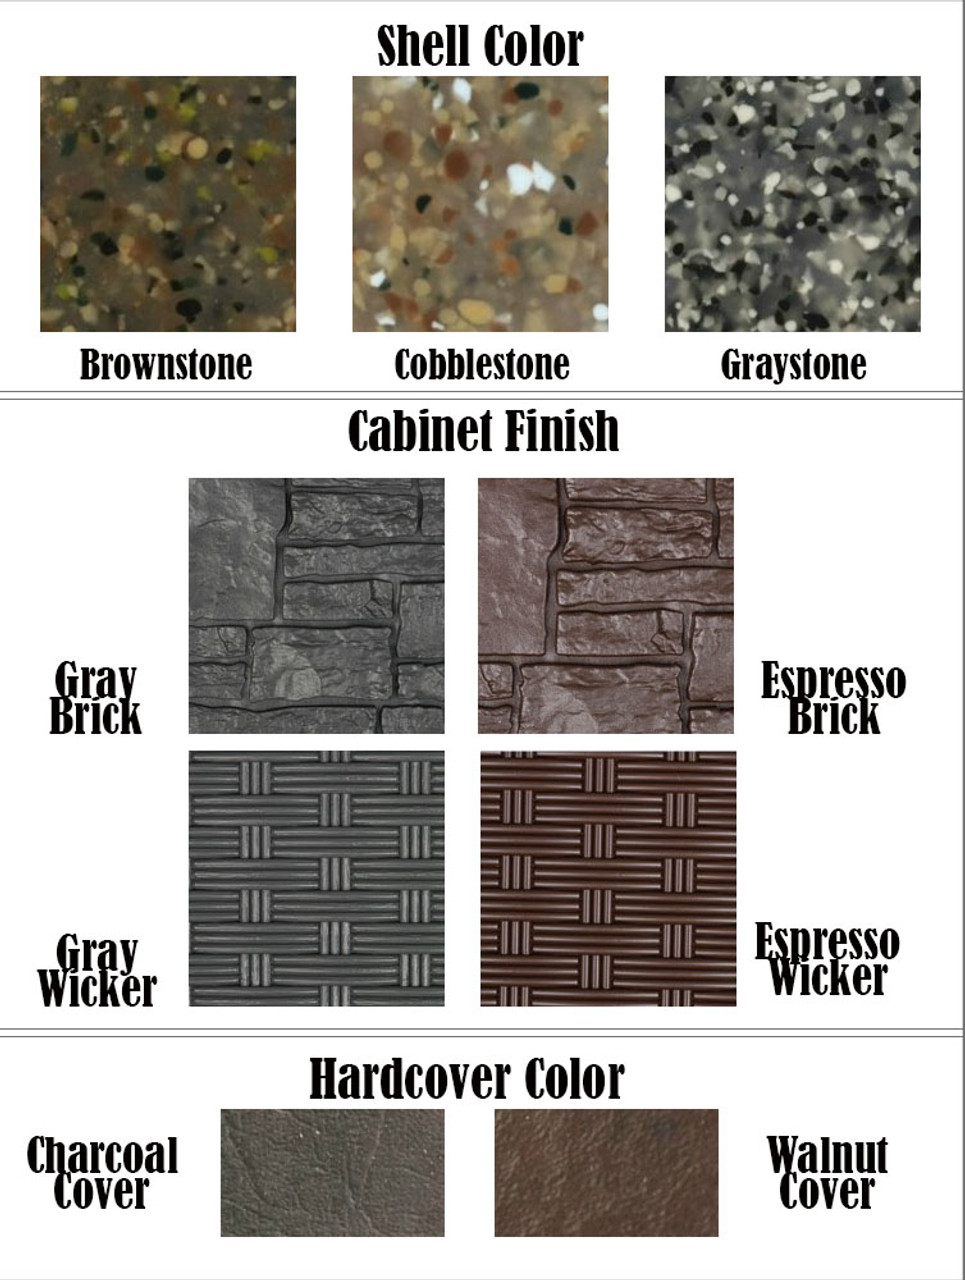 Odyssey Spa Cabinet Finishes & Shell Color Options